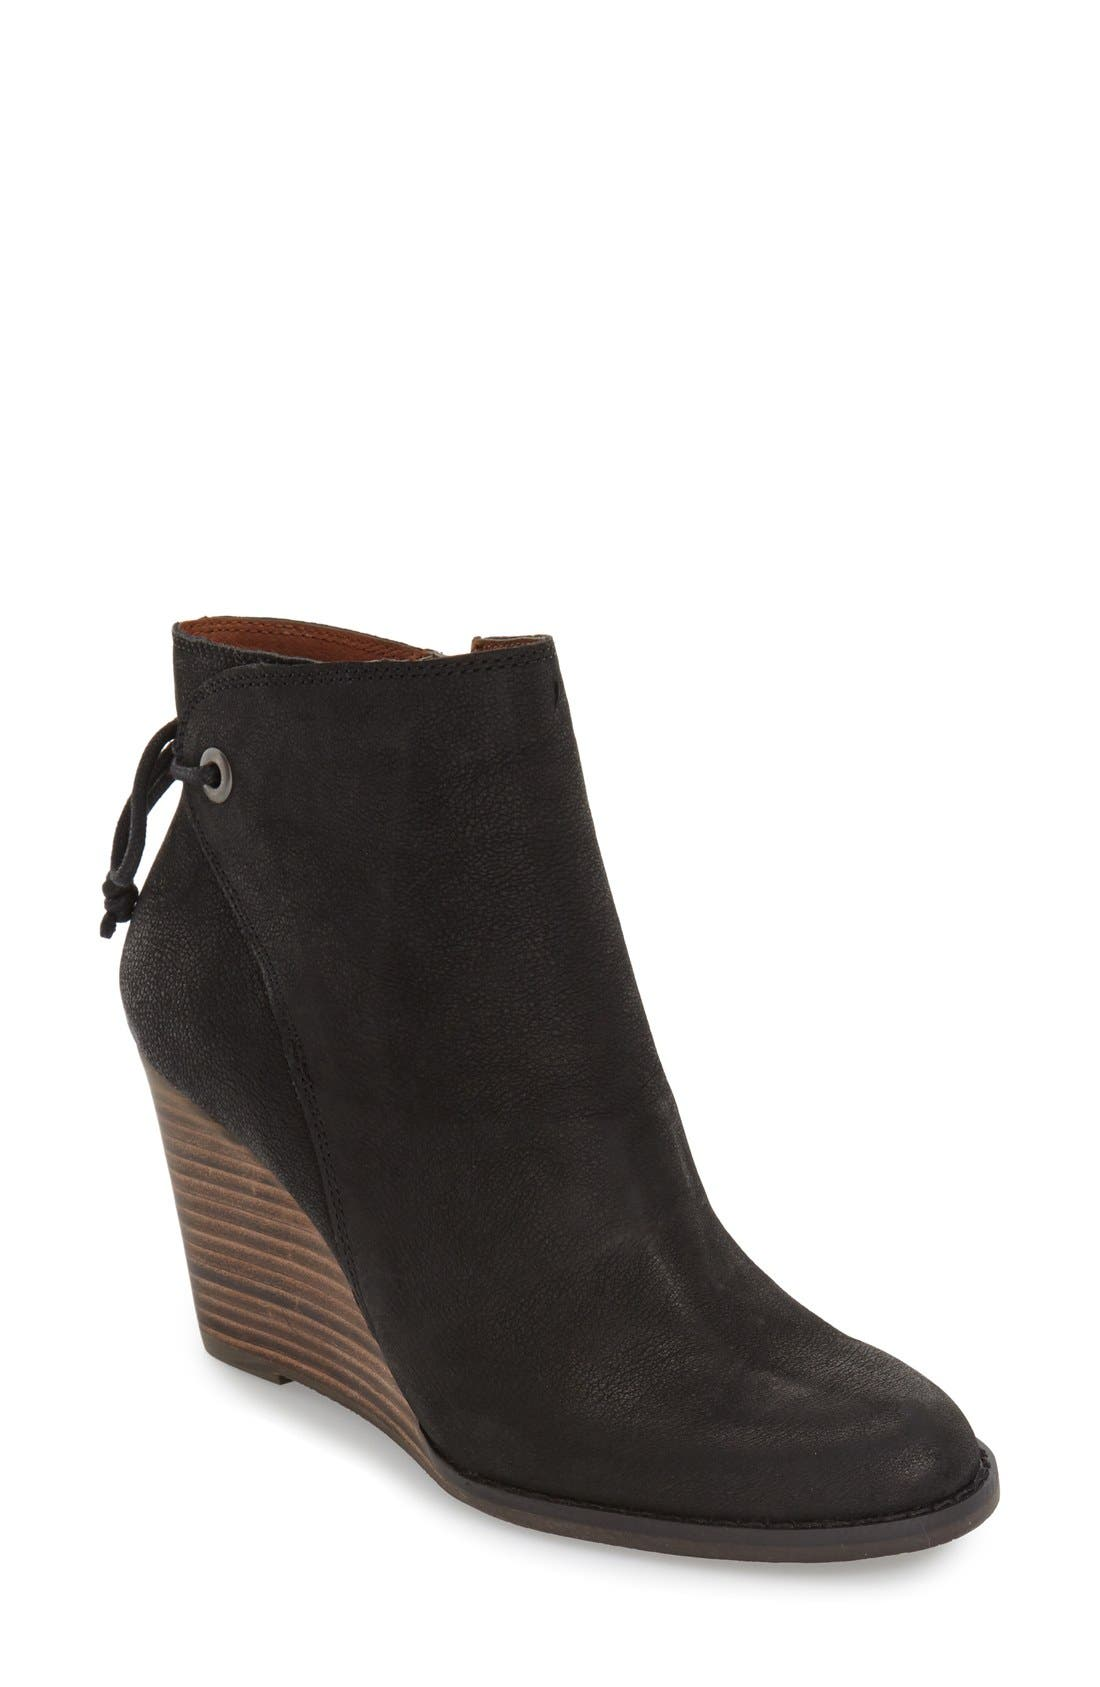 Main Image - Lucky Brand 'Yamina' Wedge Zip Bootie (Women)